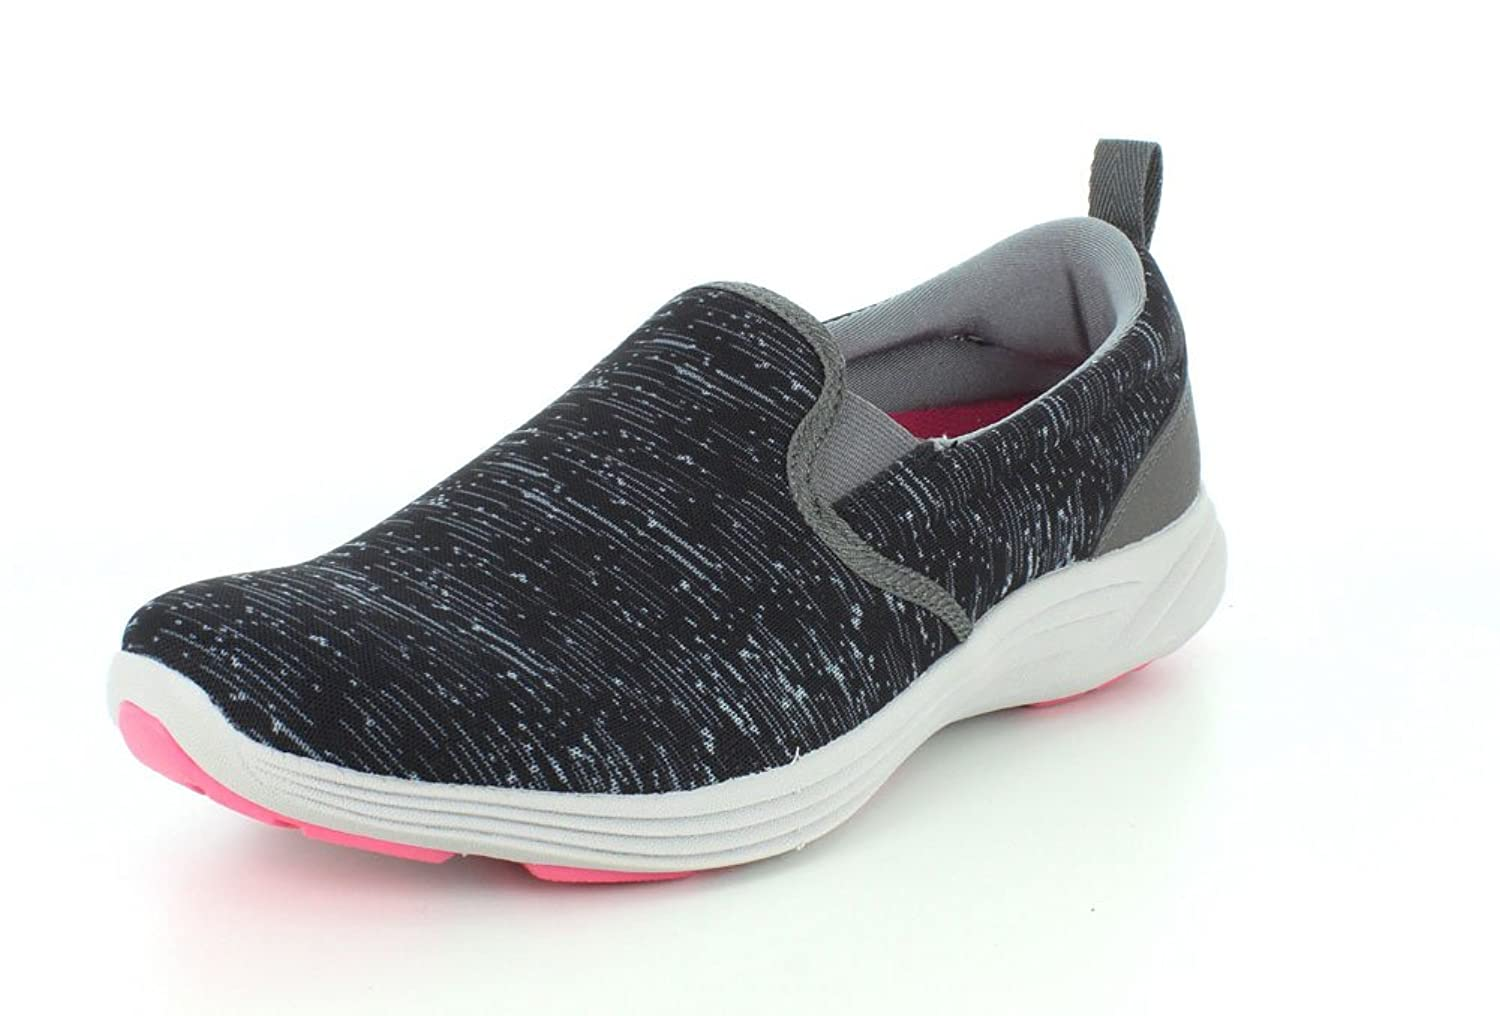 926af08b48 Vionic Agile Kea Slip On Women Textile Black Slip On (279-182336)  Buy  Online at Low Prices in India - Amazon.in